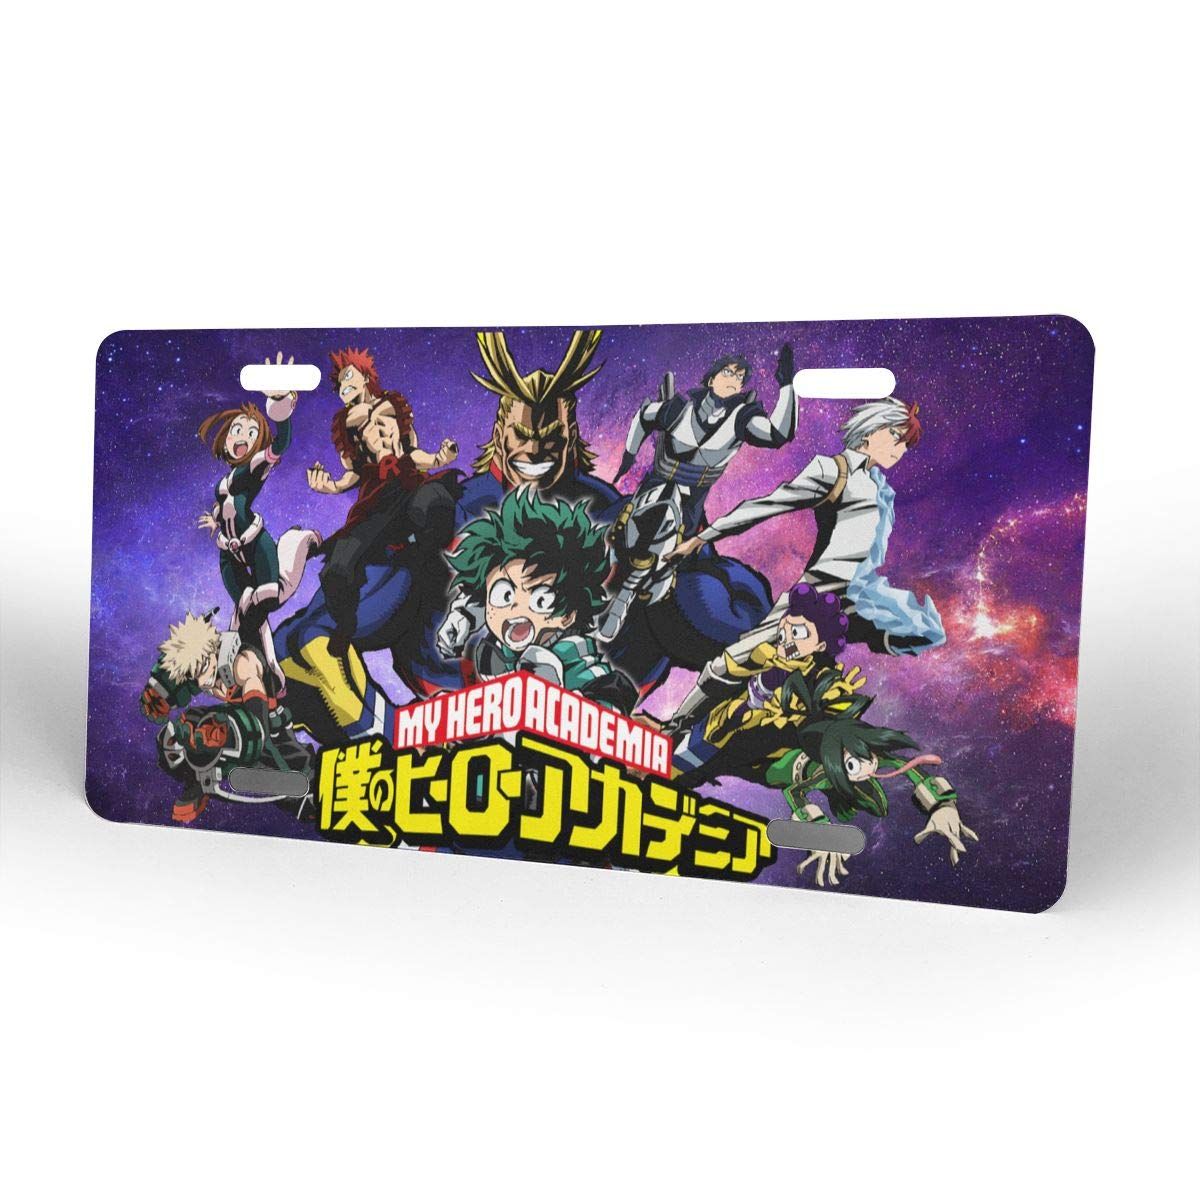 Amazon.com: Aruba Z Legend My Hero Academia Placa de metal ...